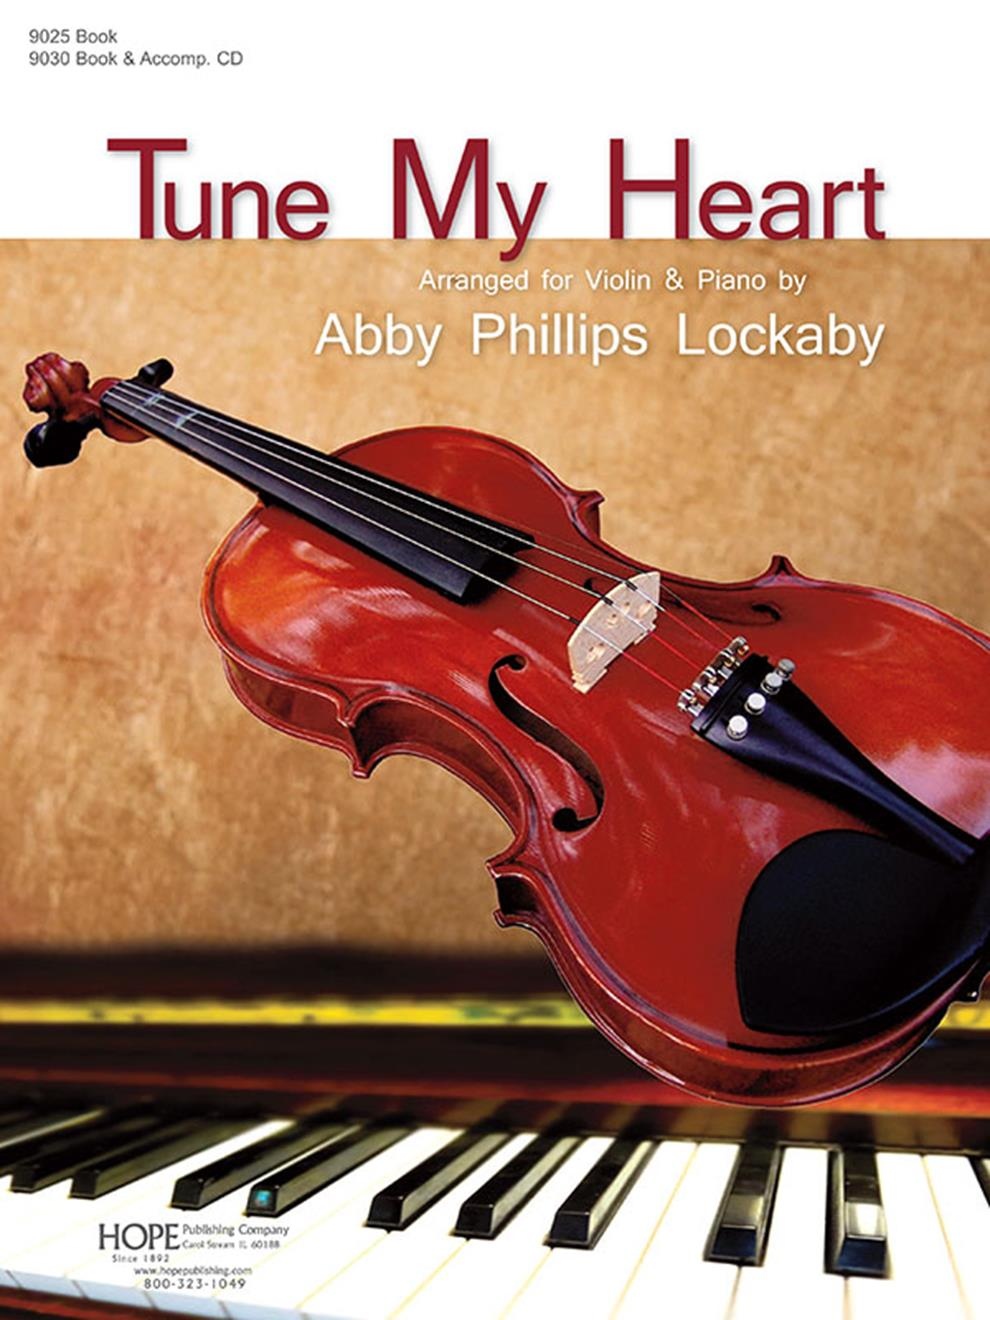 Tune My Heart - violin collection Cover Image